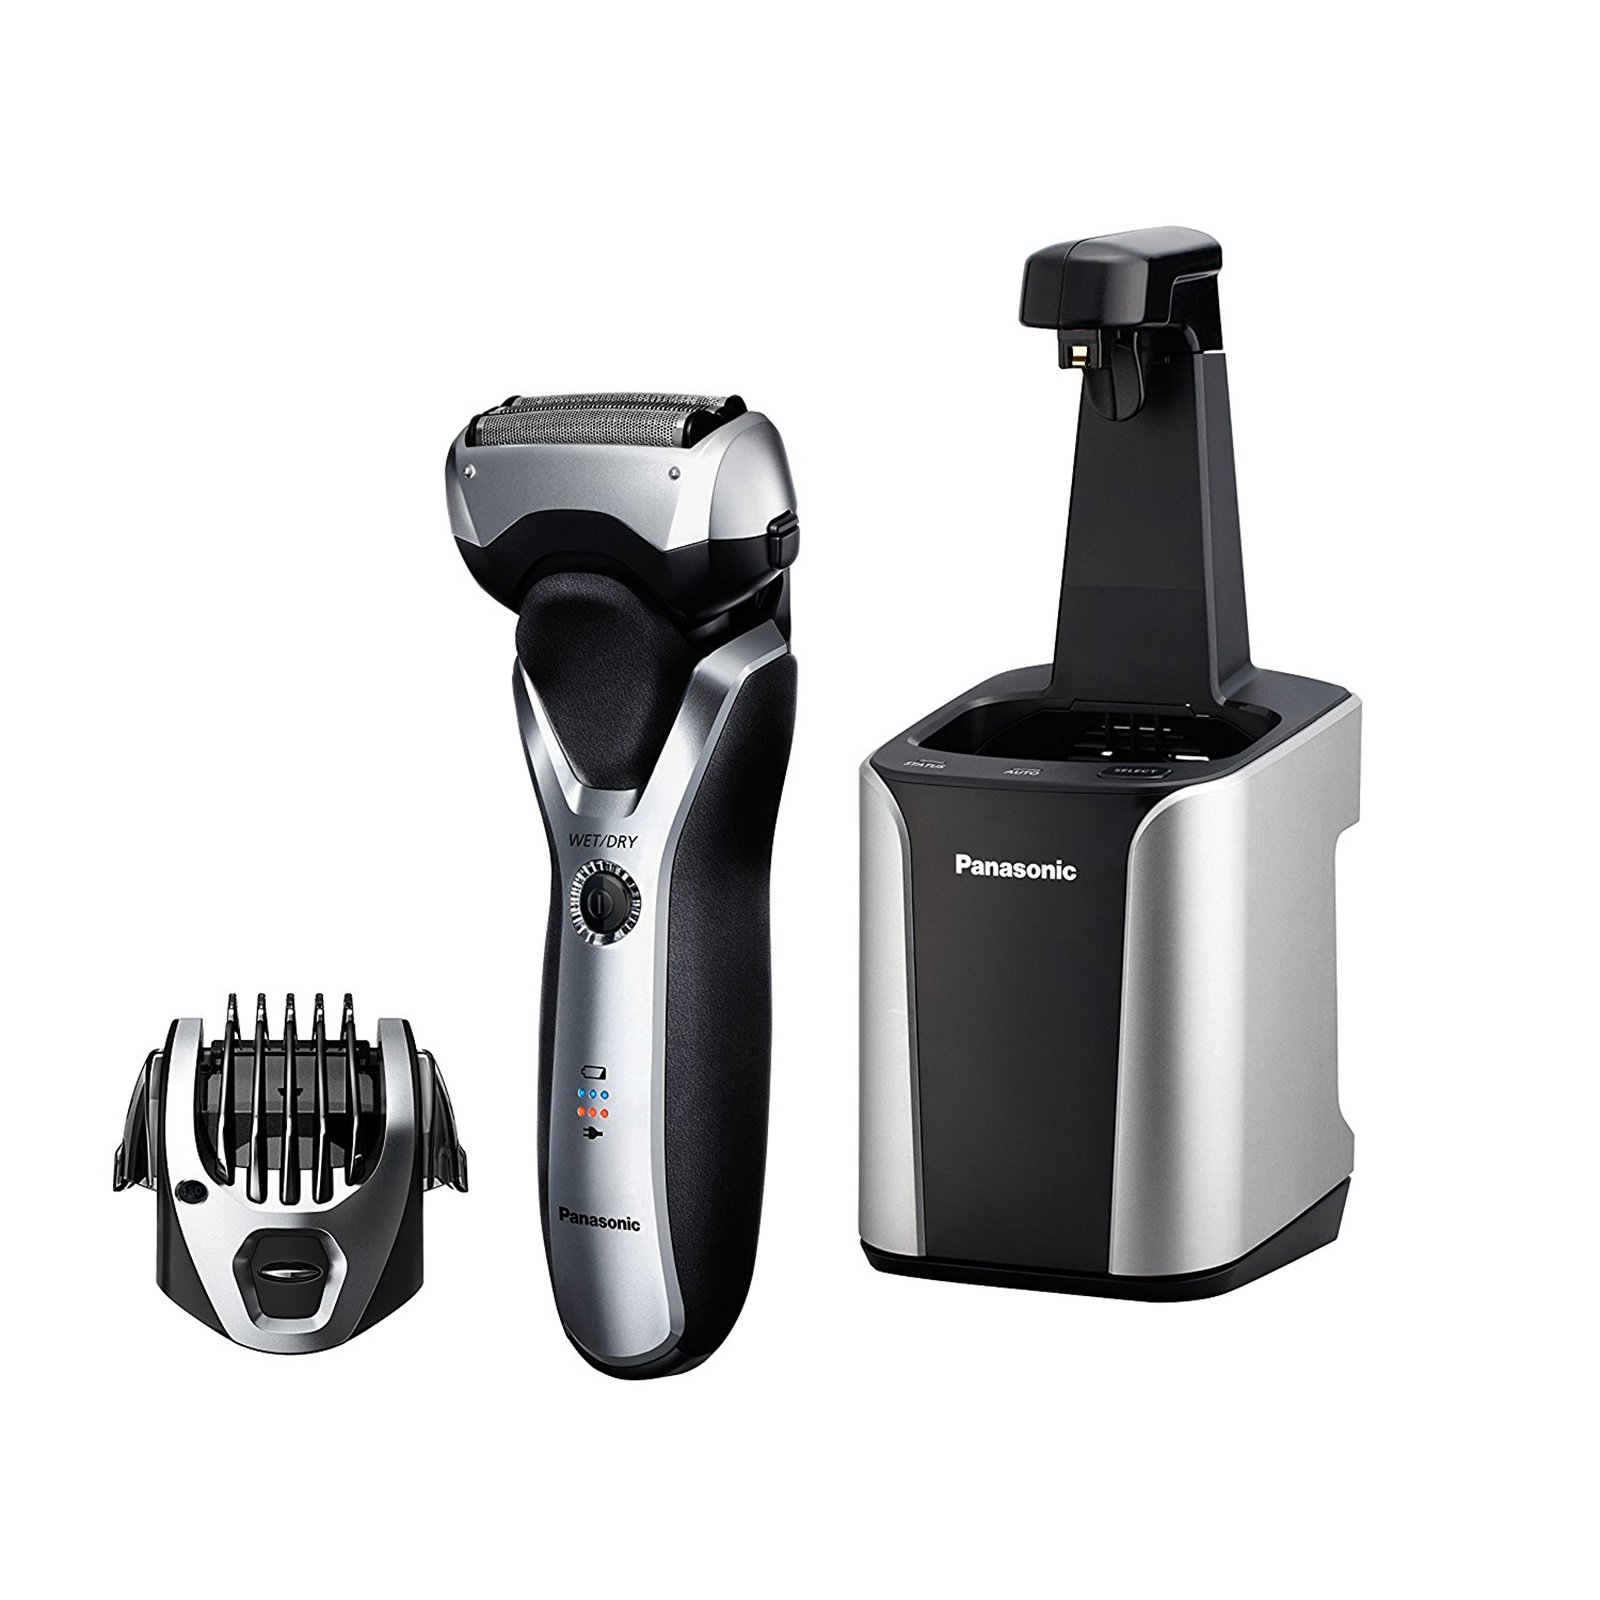 Panasonic Arc3 Electric Razor, Men's 3-Blade with Wet/Dry Convenience, Comb Attachment for